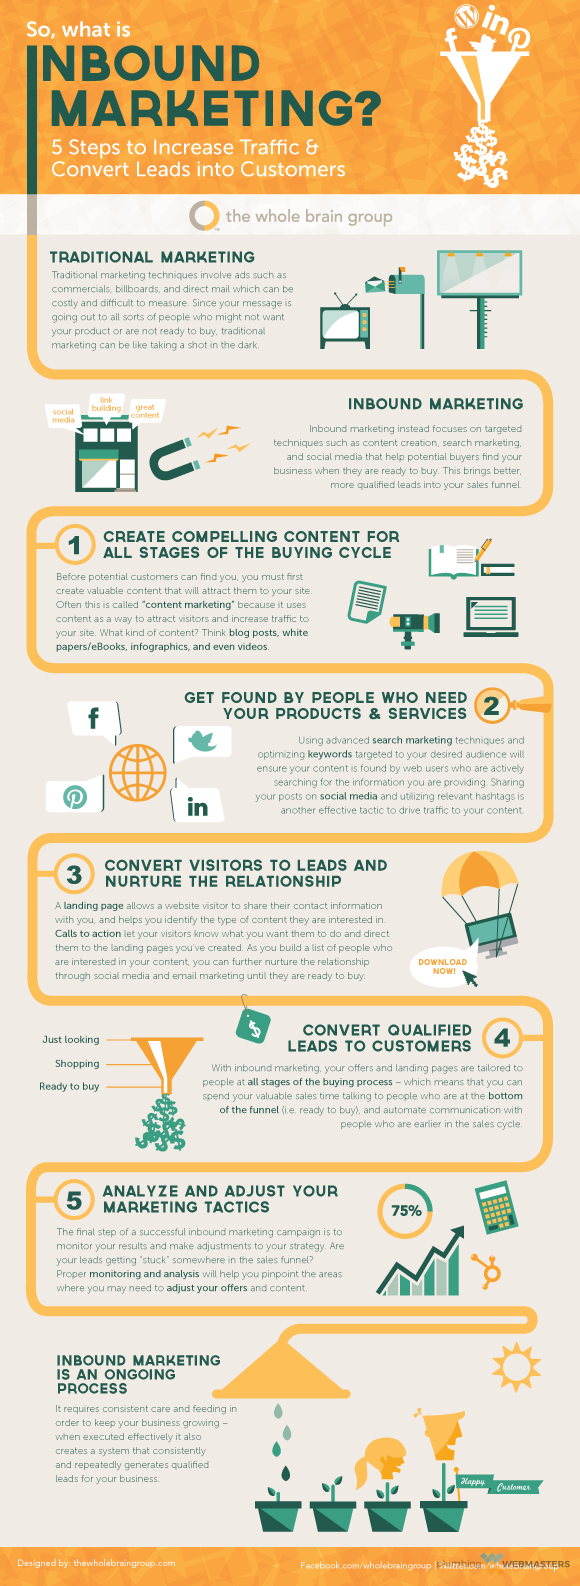 So What is Inbound Marketing Infographic